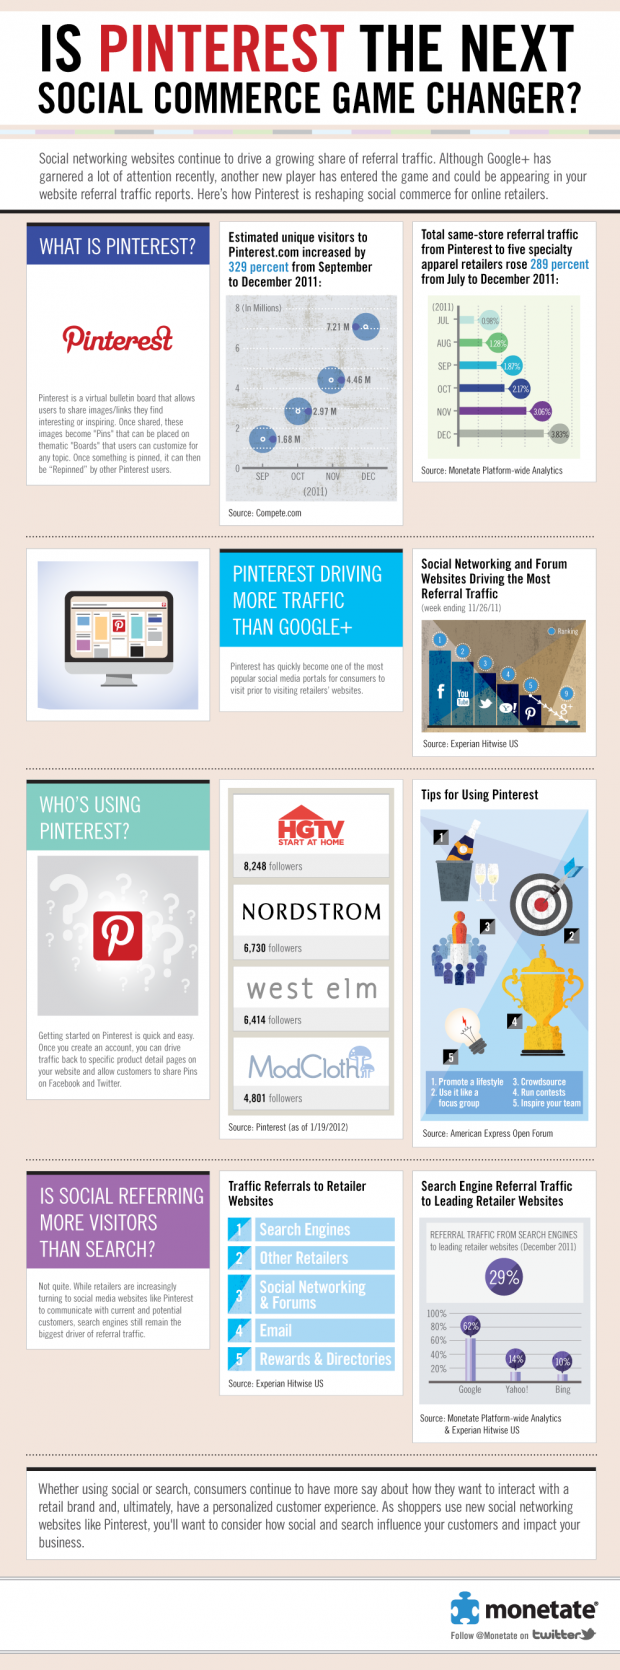 Is Pinterest the Next Social Commerce Game Changer? [Great overview graphic]